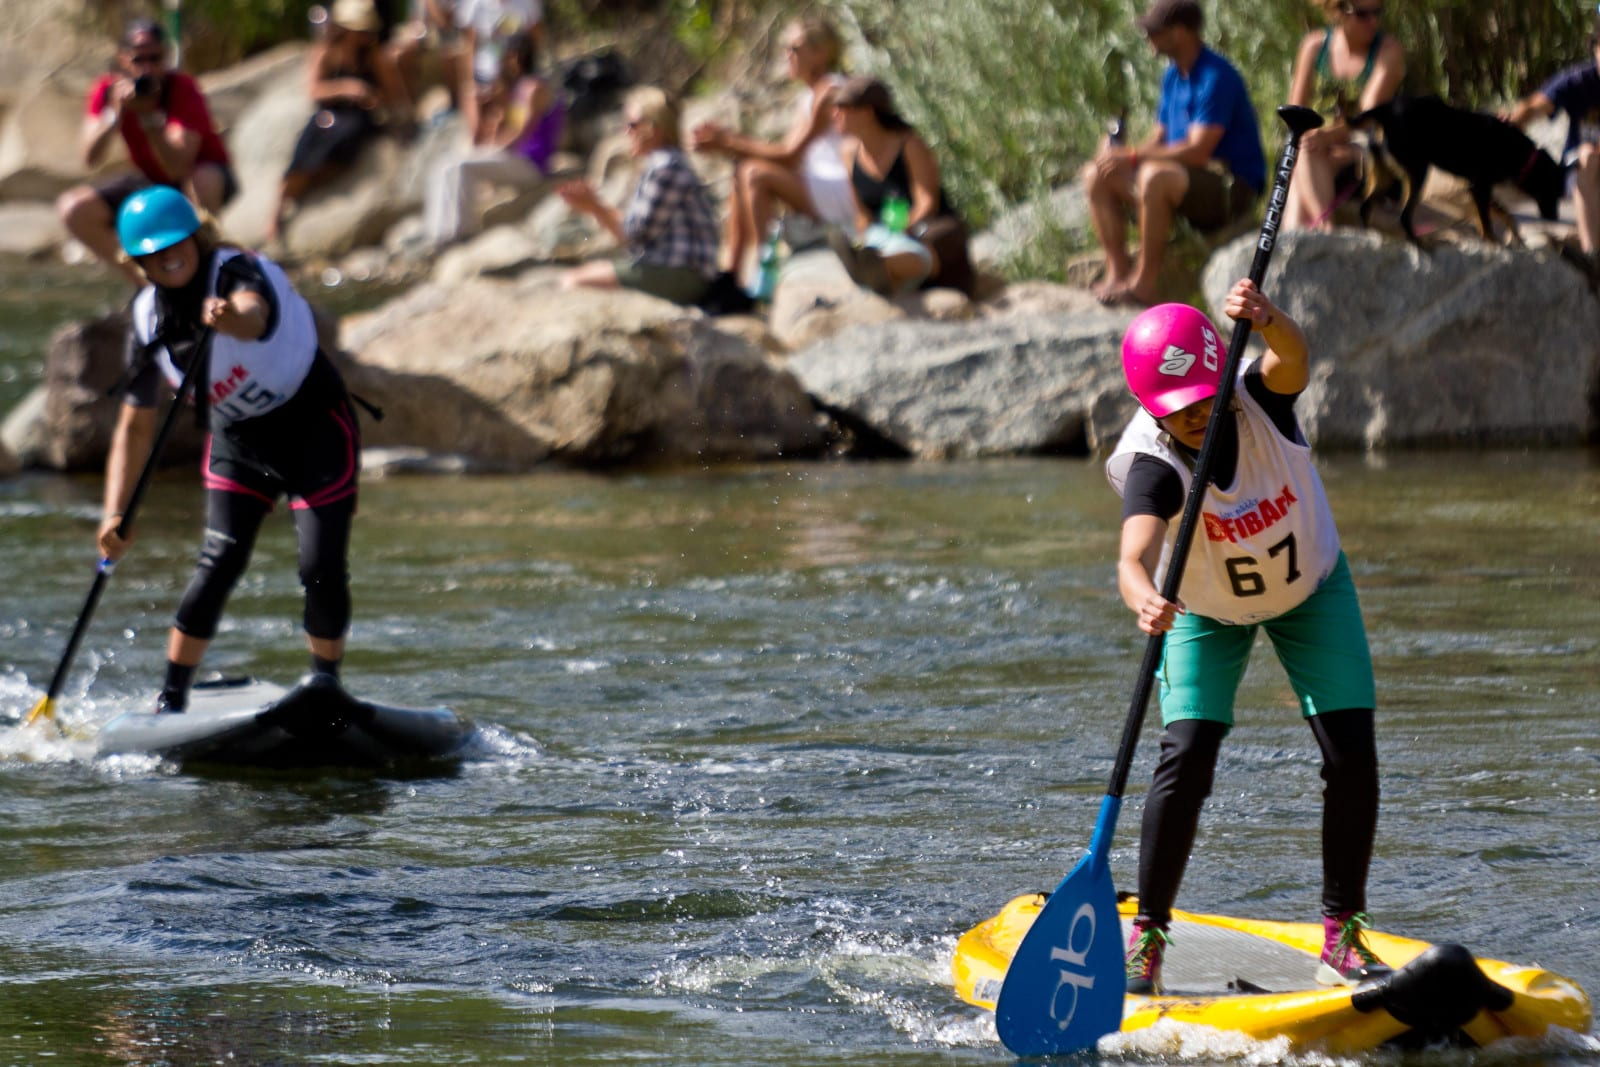 Colorado Watersports Stand Up Paddle Boarding Salida